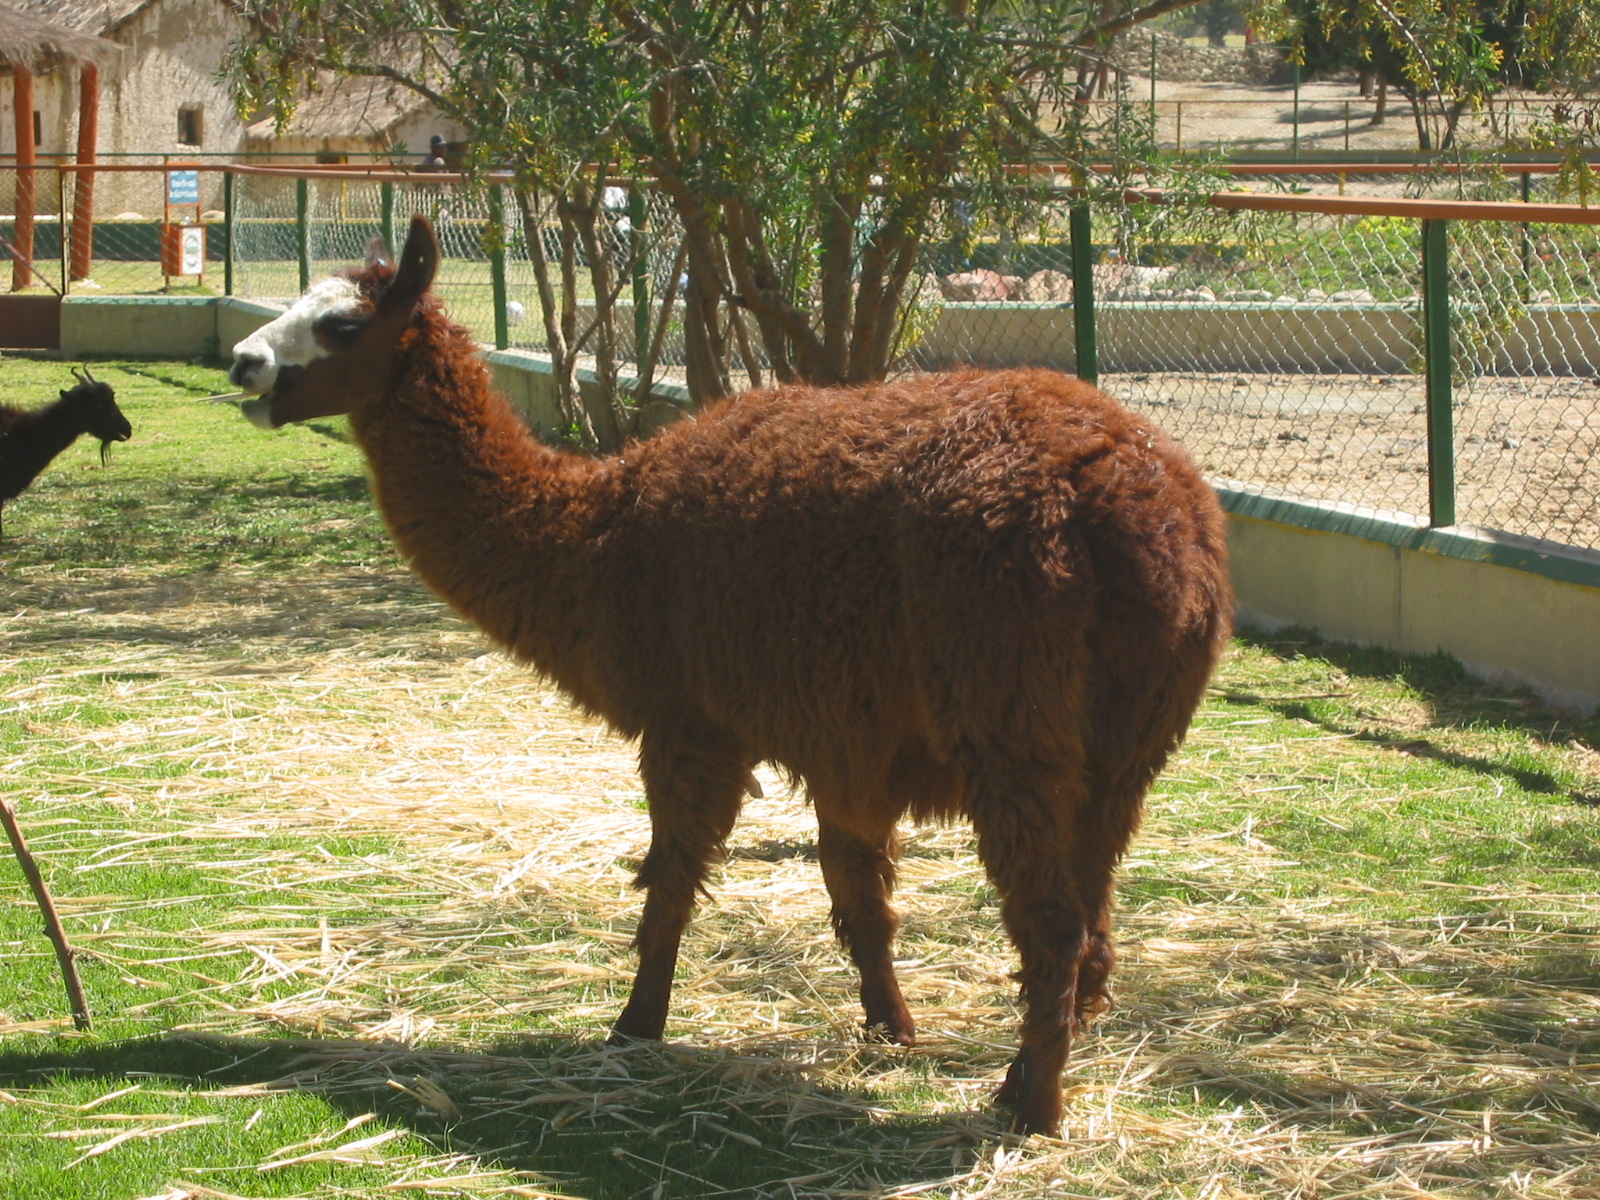 Guanaco - largest South American camelid